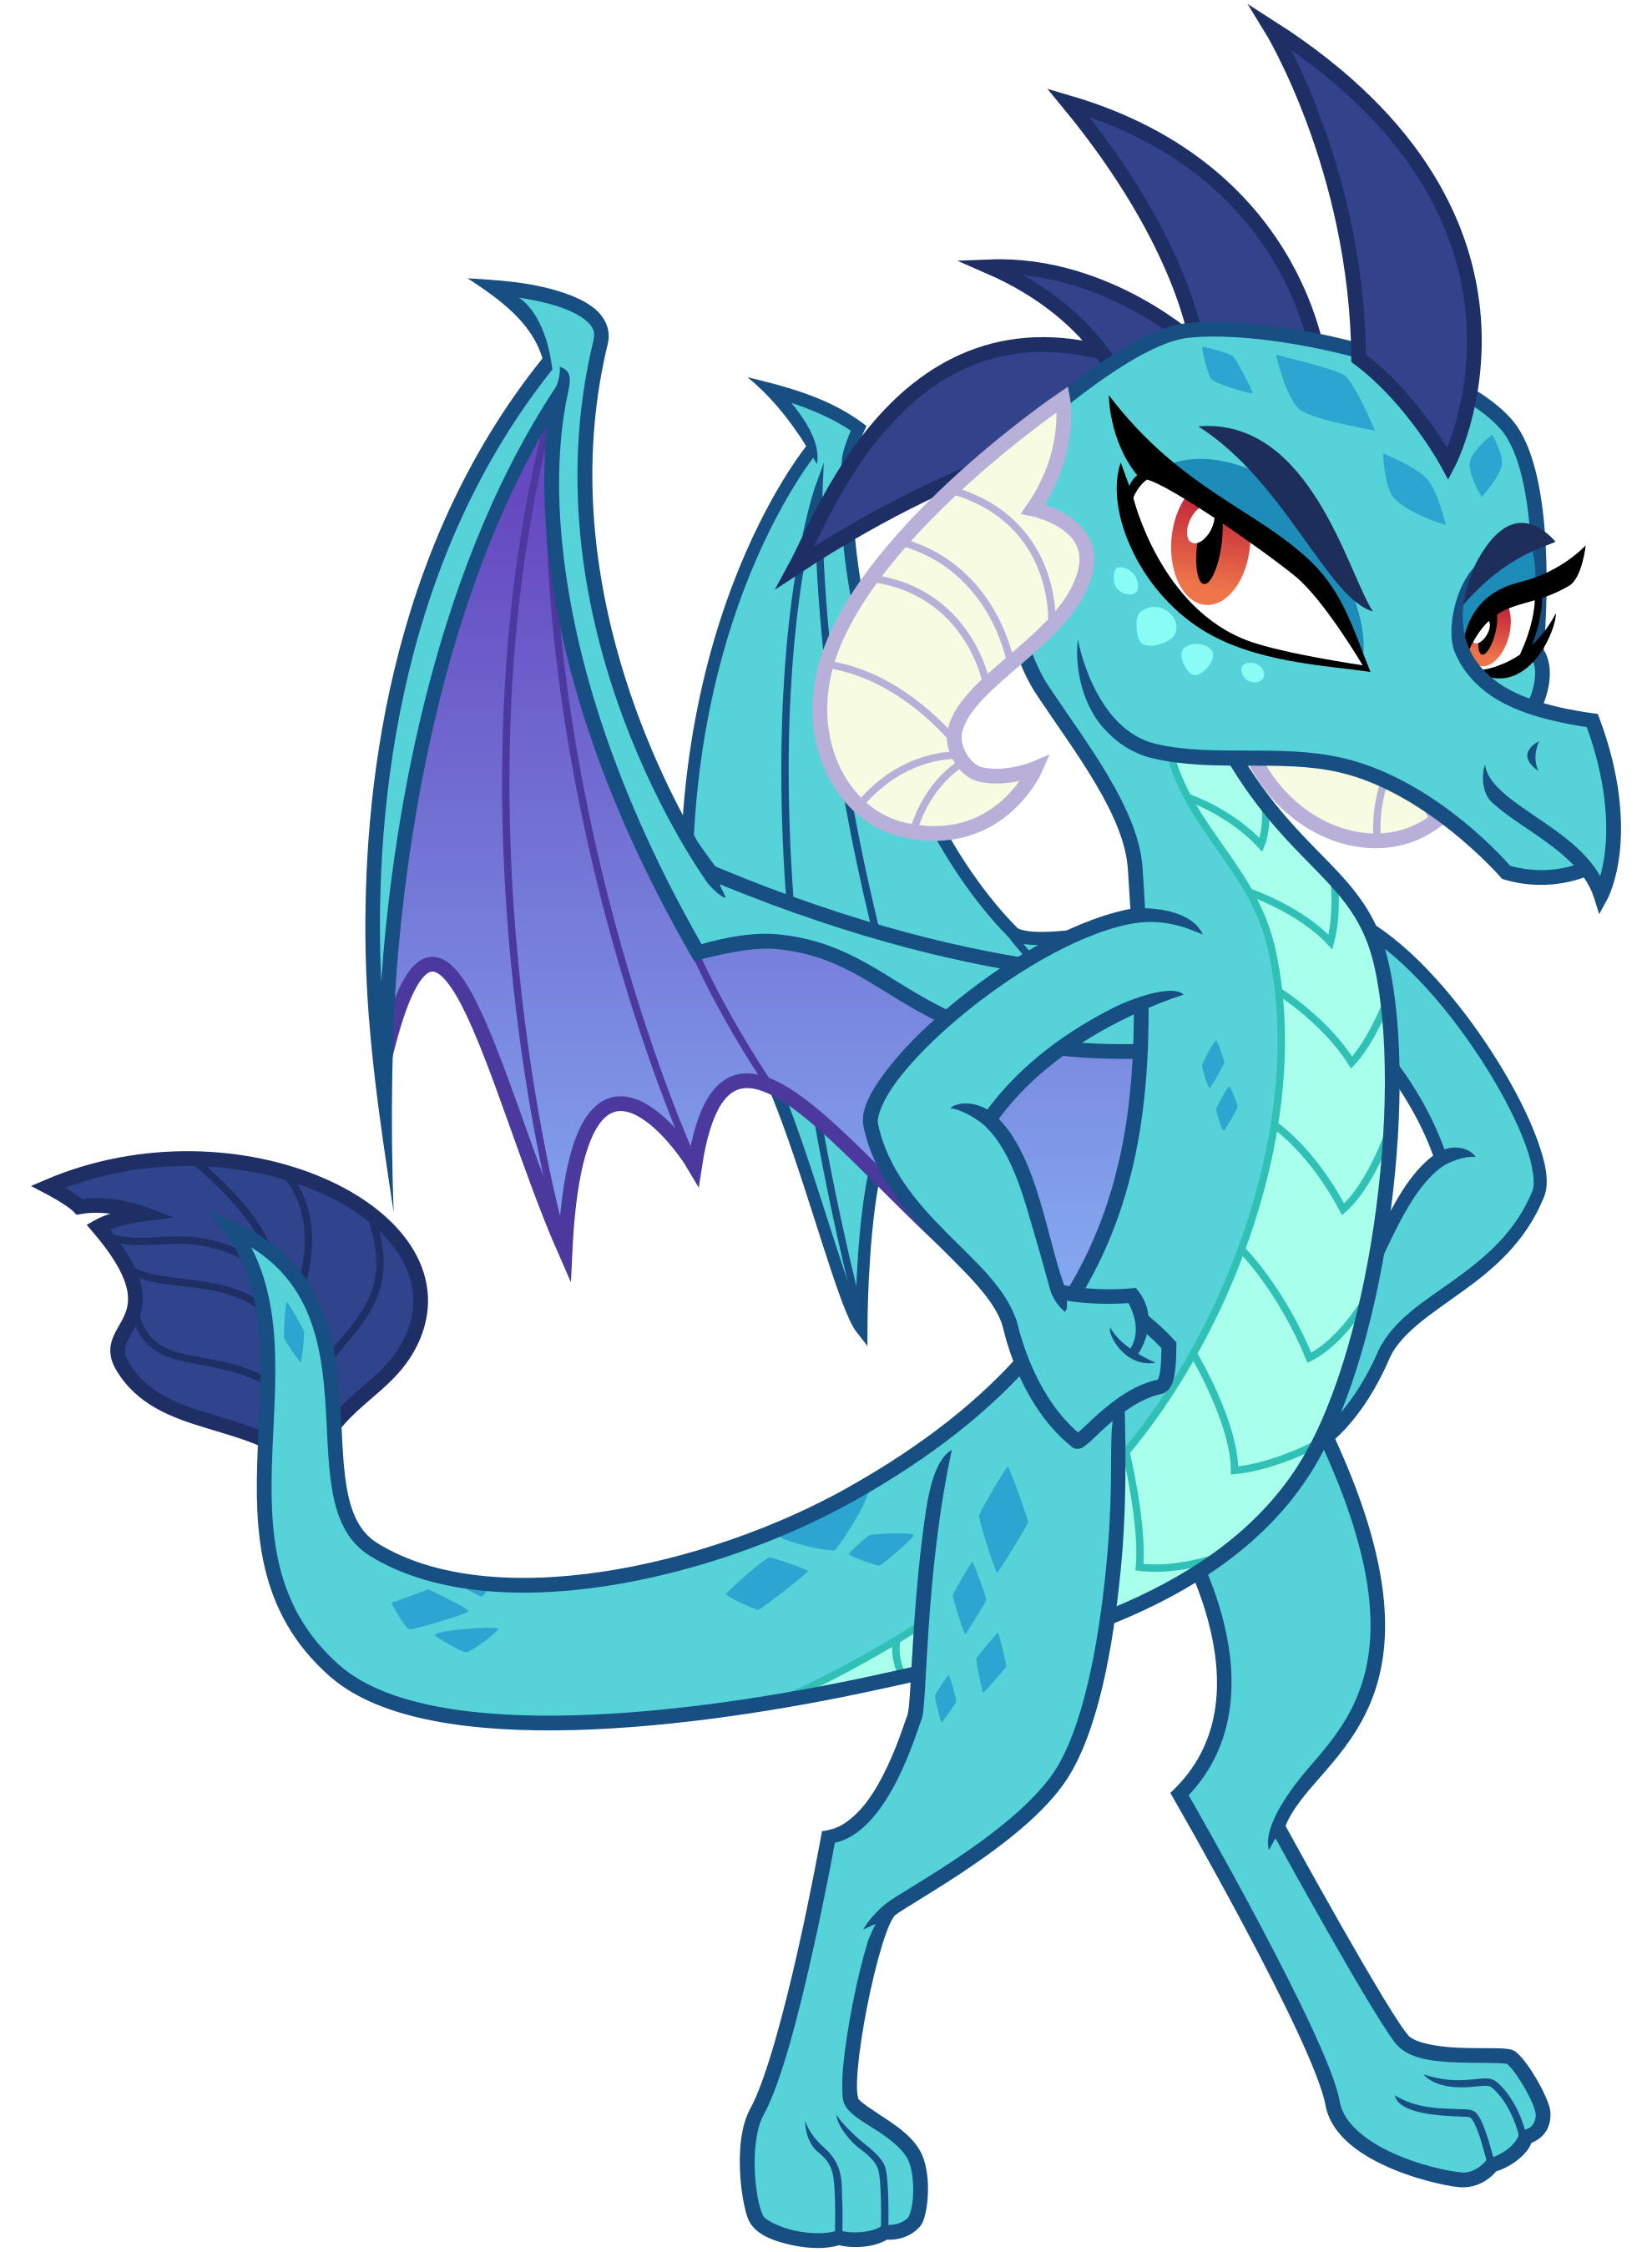 princess ember the united anization toons heroes wiki fandom MLP Body Base ember mlp